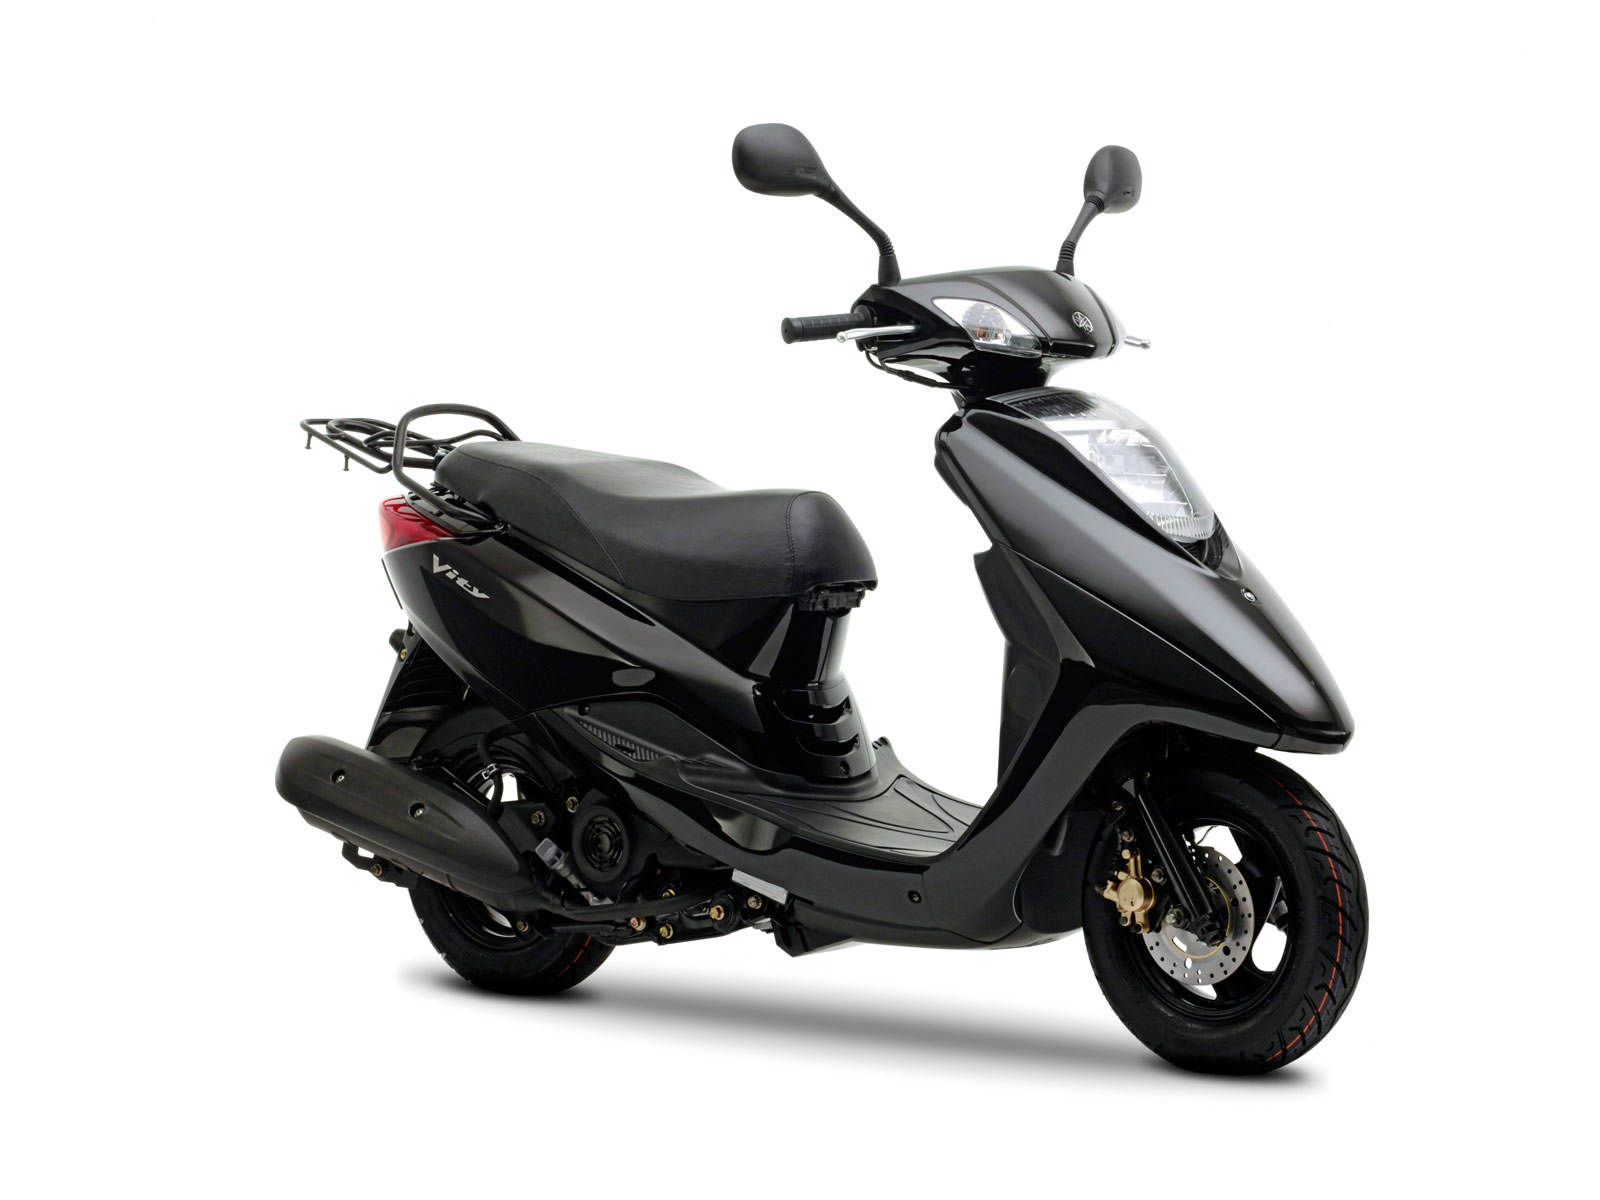 2008 yamaha vity 125 scooter pictures and specifications. Black Bedroom Furniture Sets. Home Design Ideas